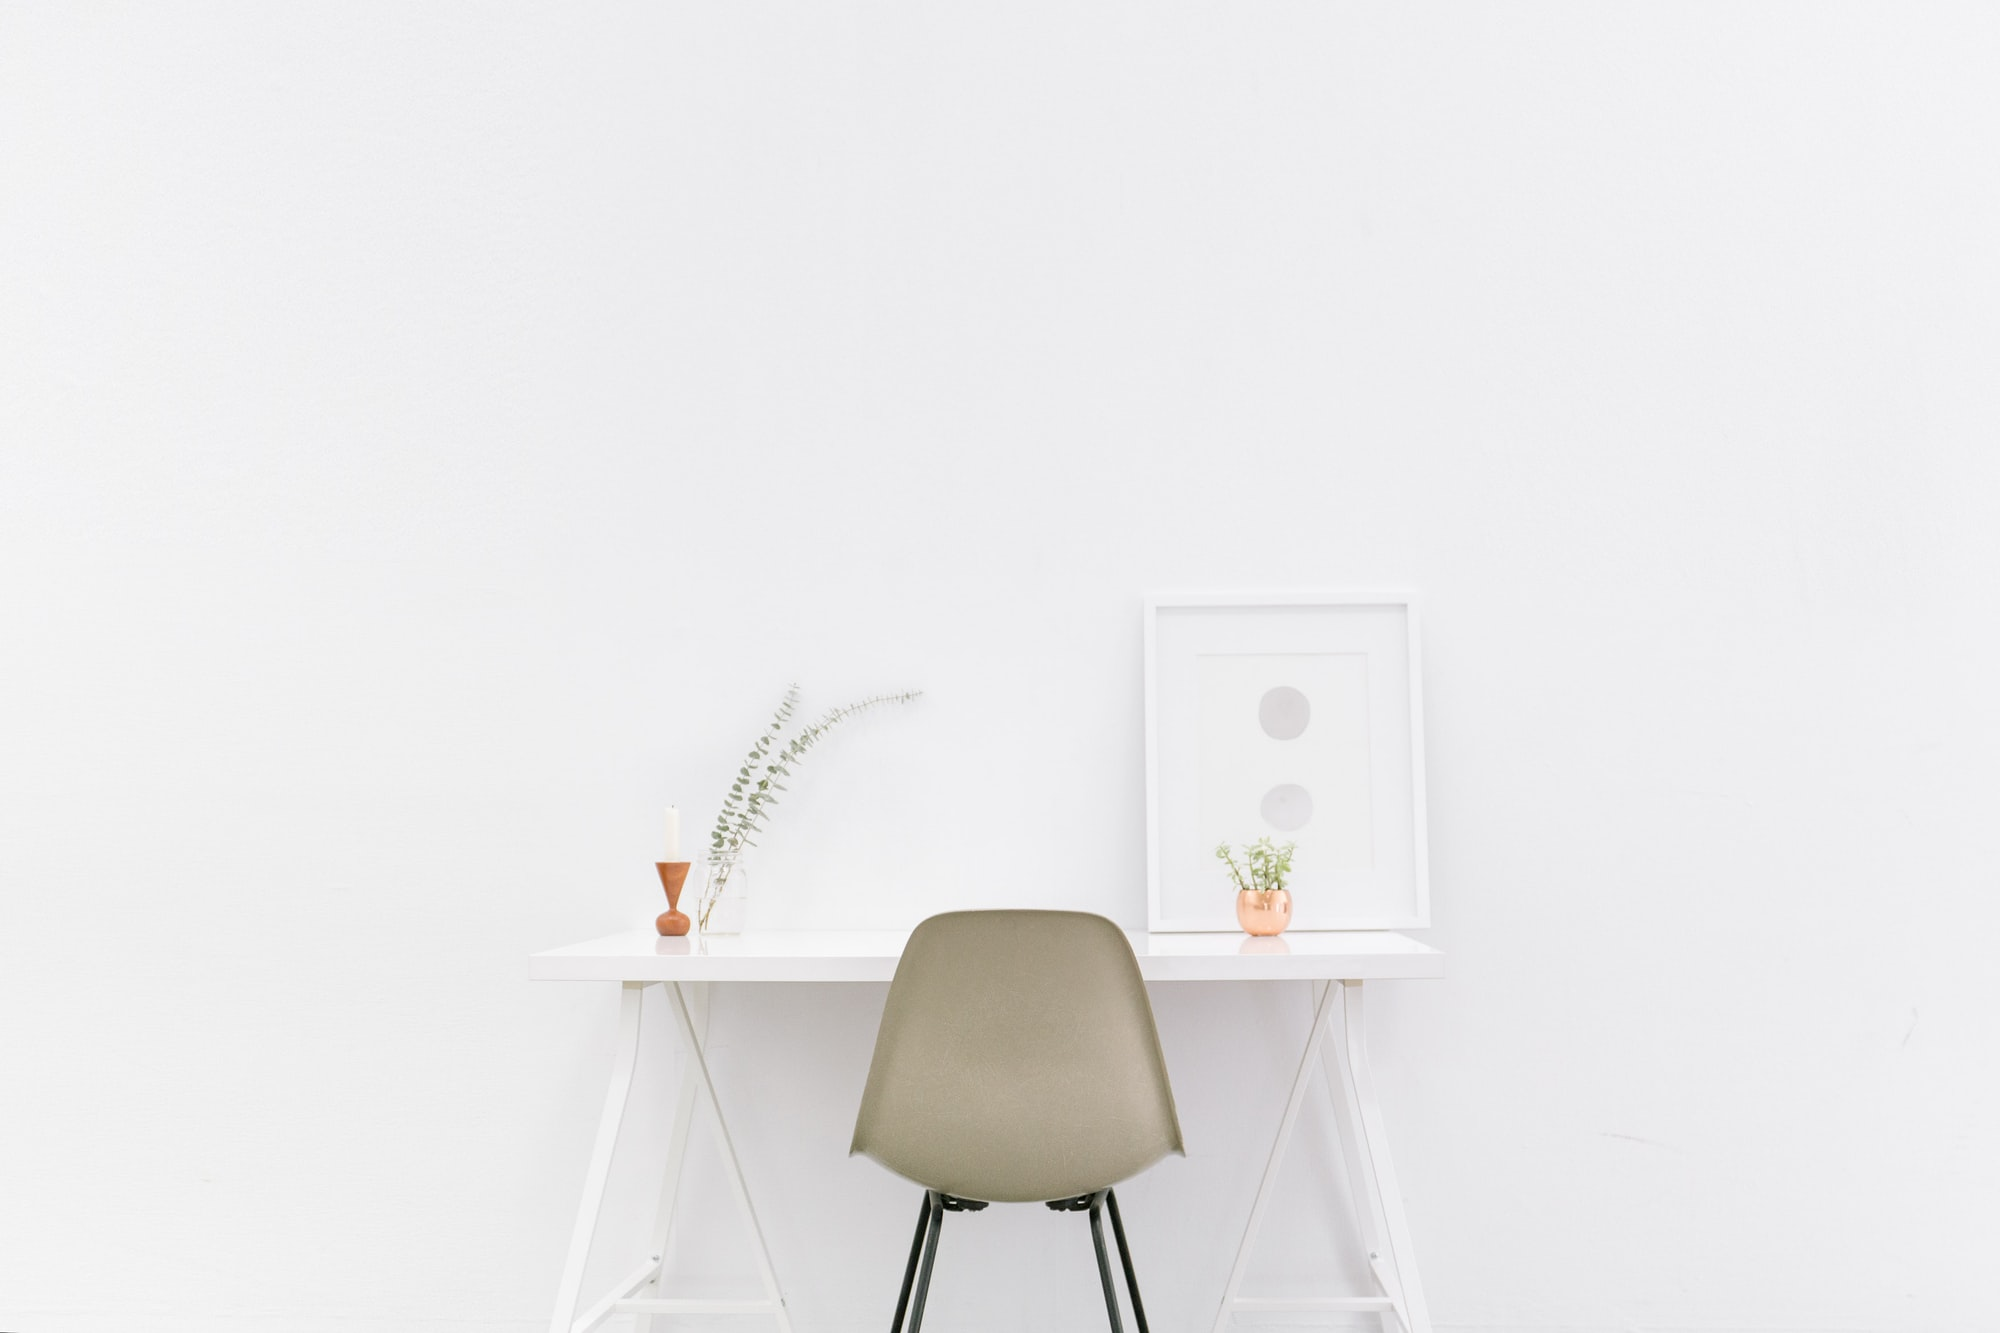 Minimalist white table